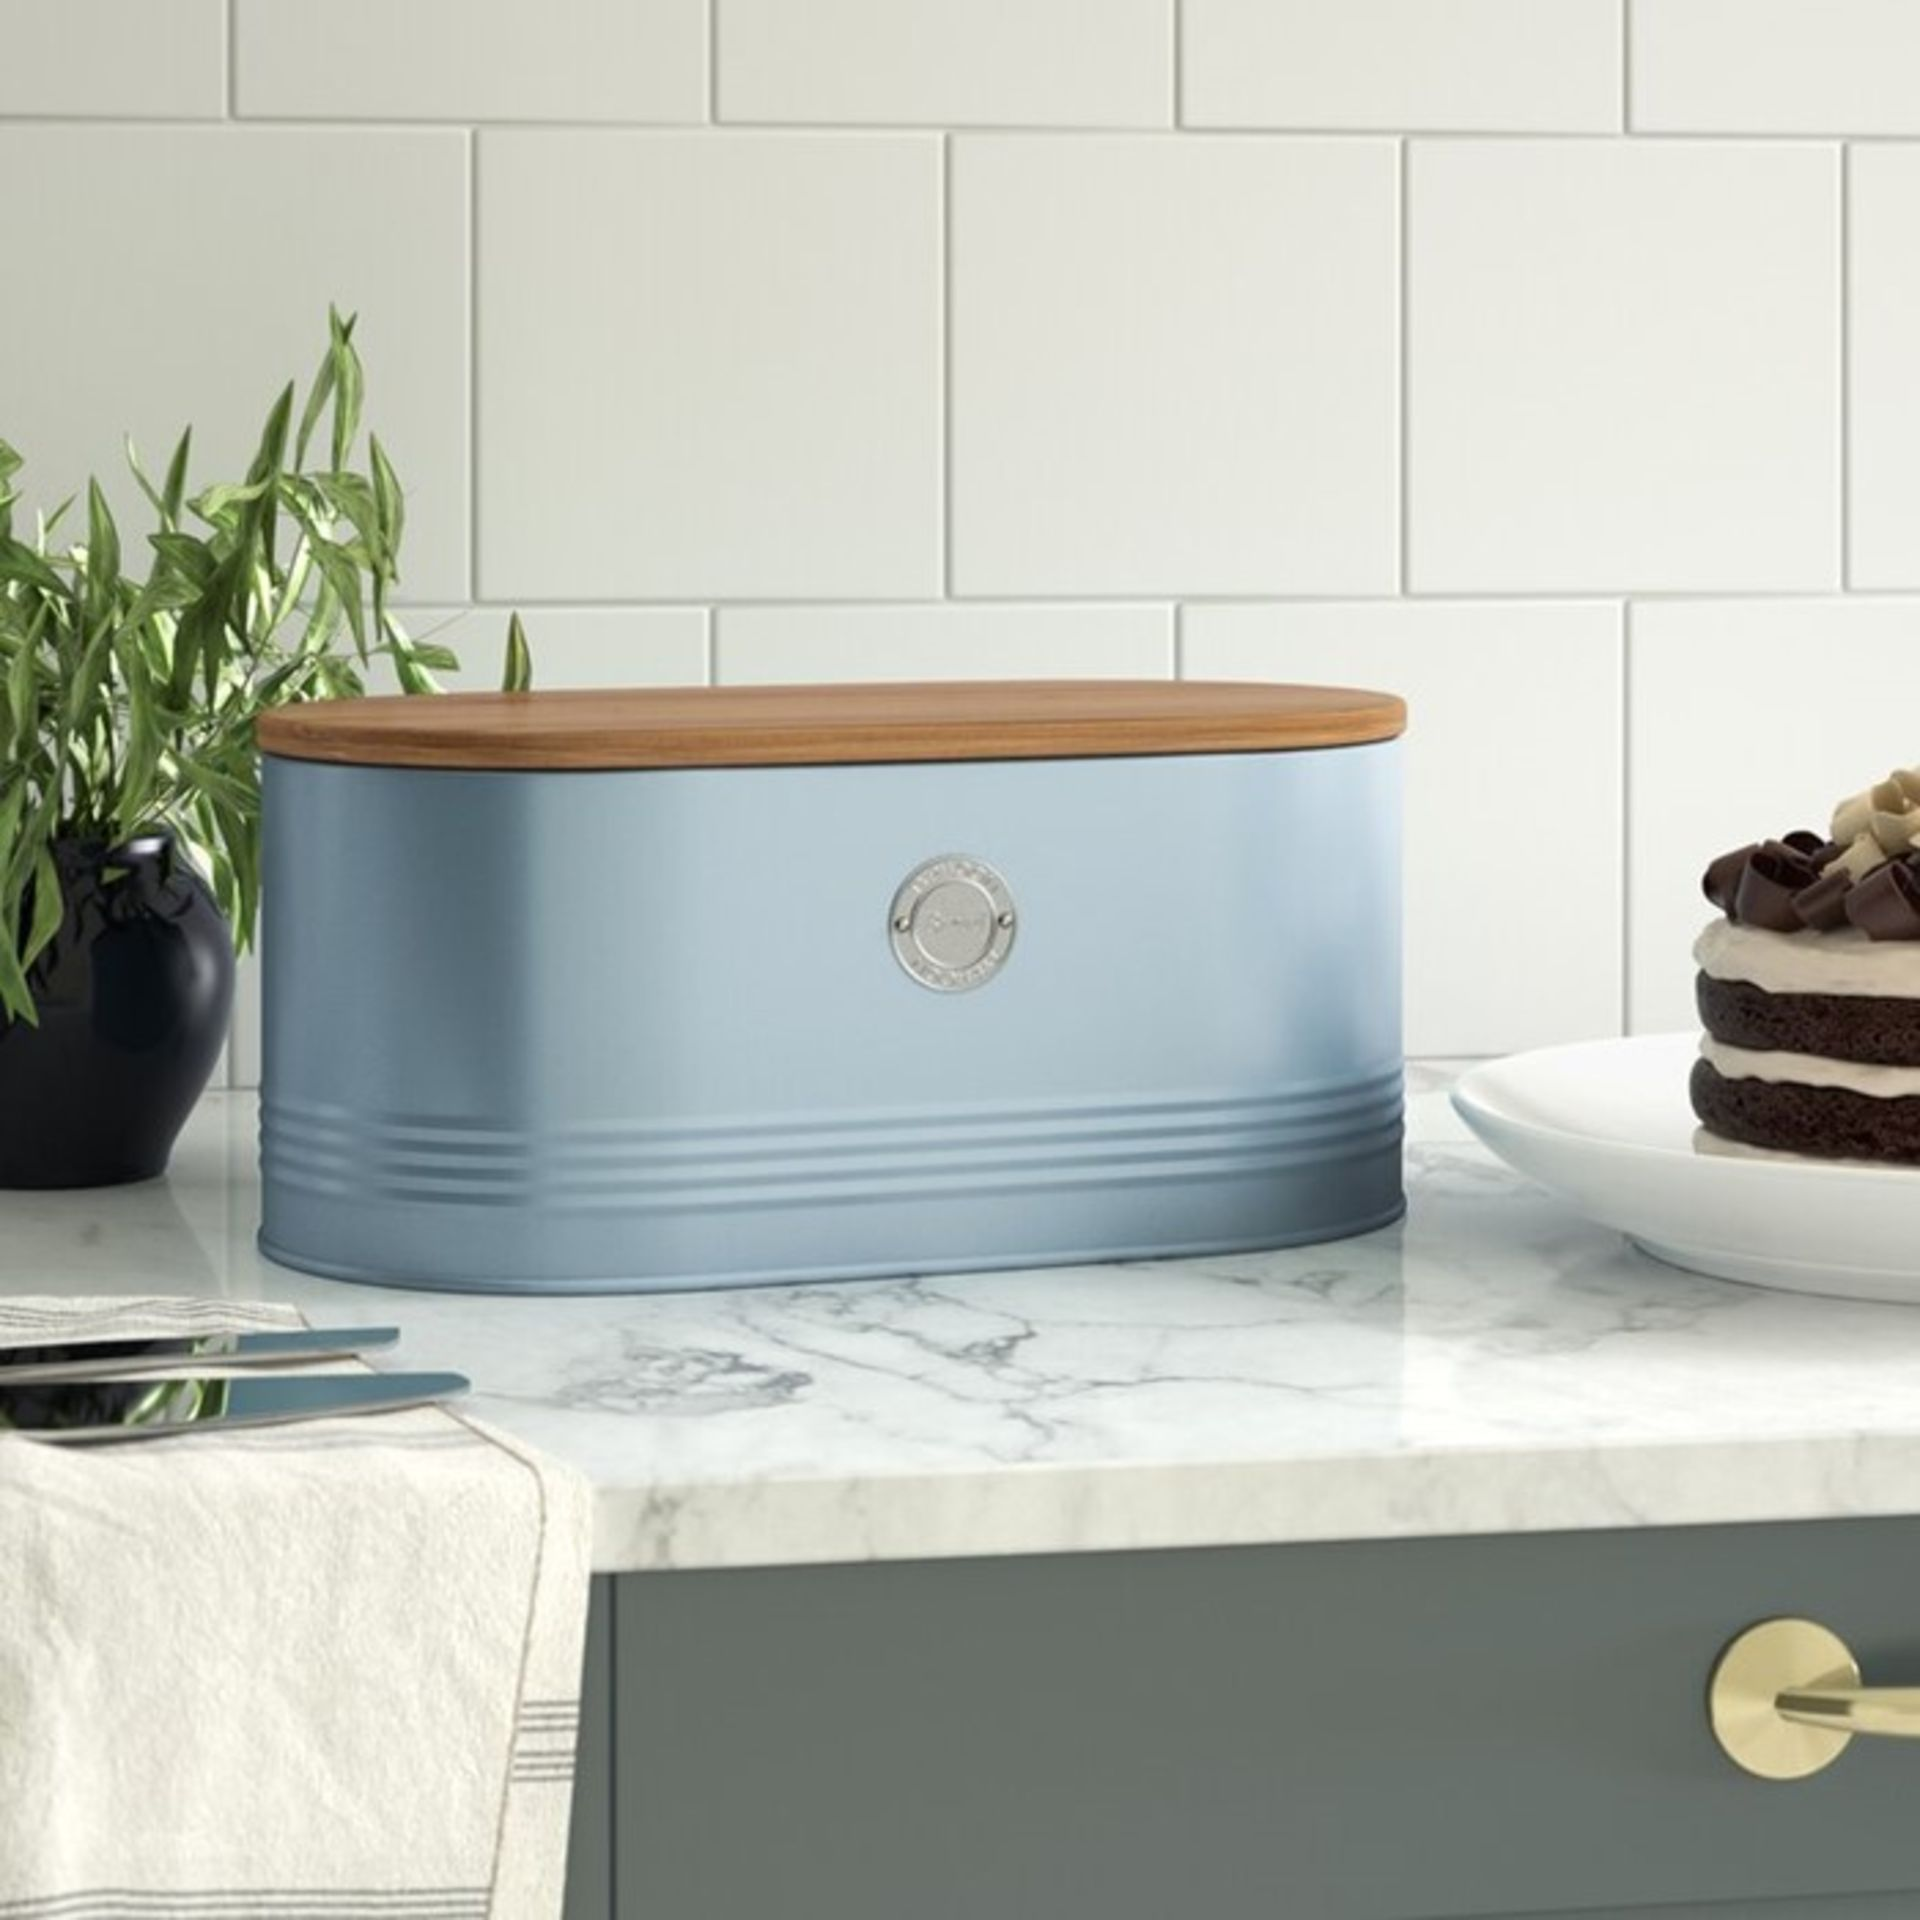 Typhoon, Living Bread Bin (BLUE) - RRP £18.95 (LOZ1515 - 21629/37) 4G